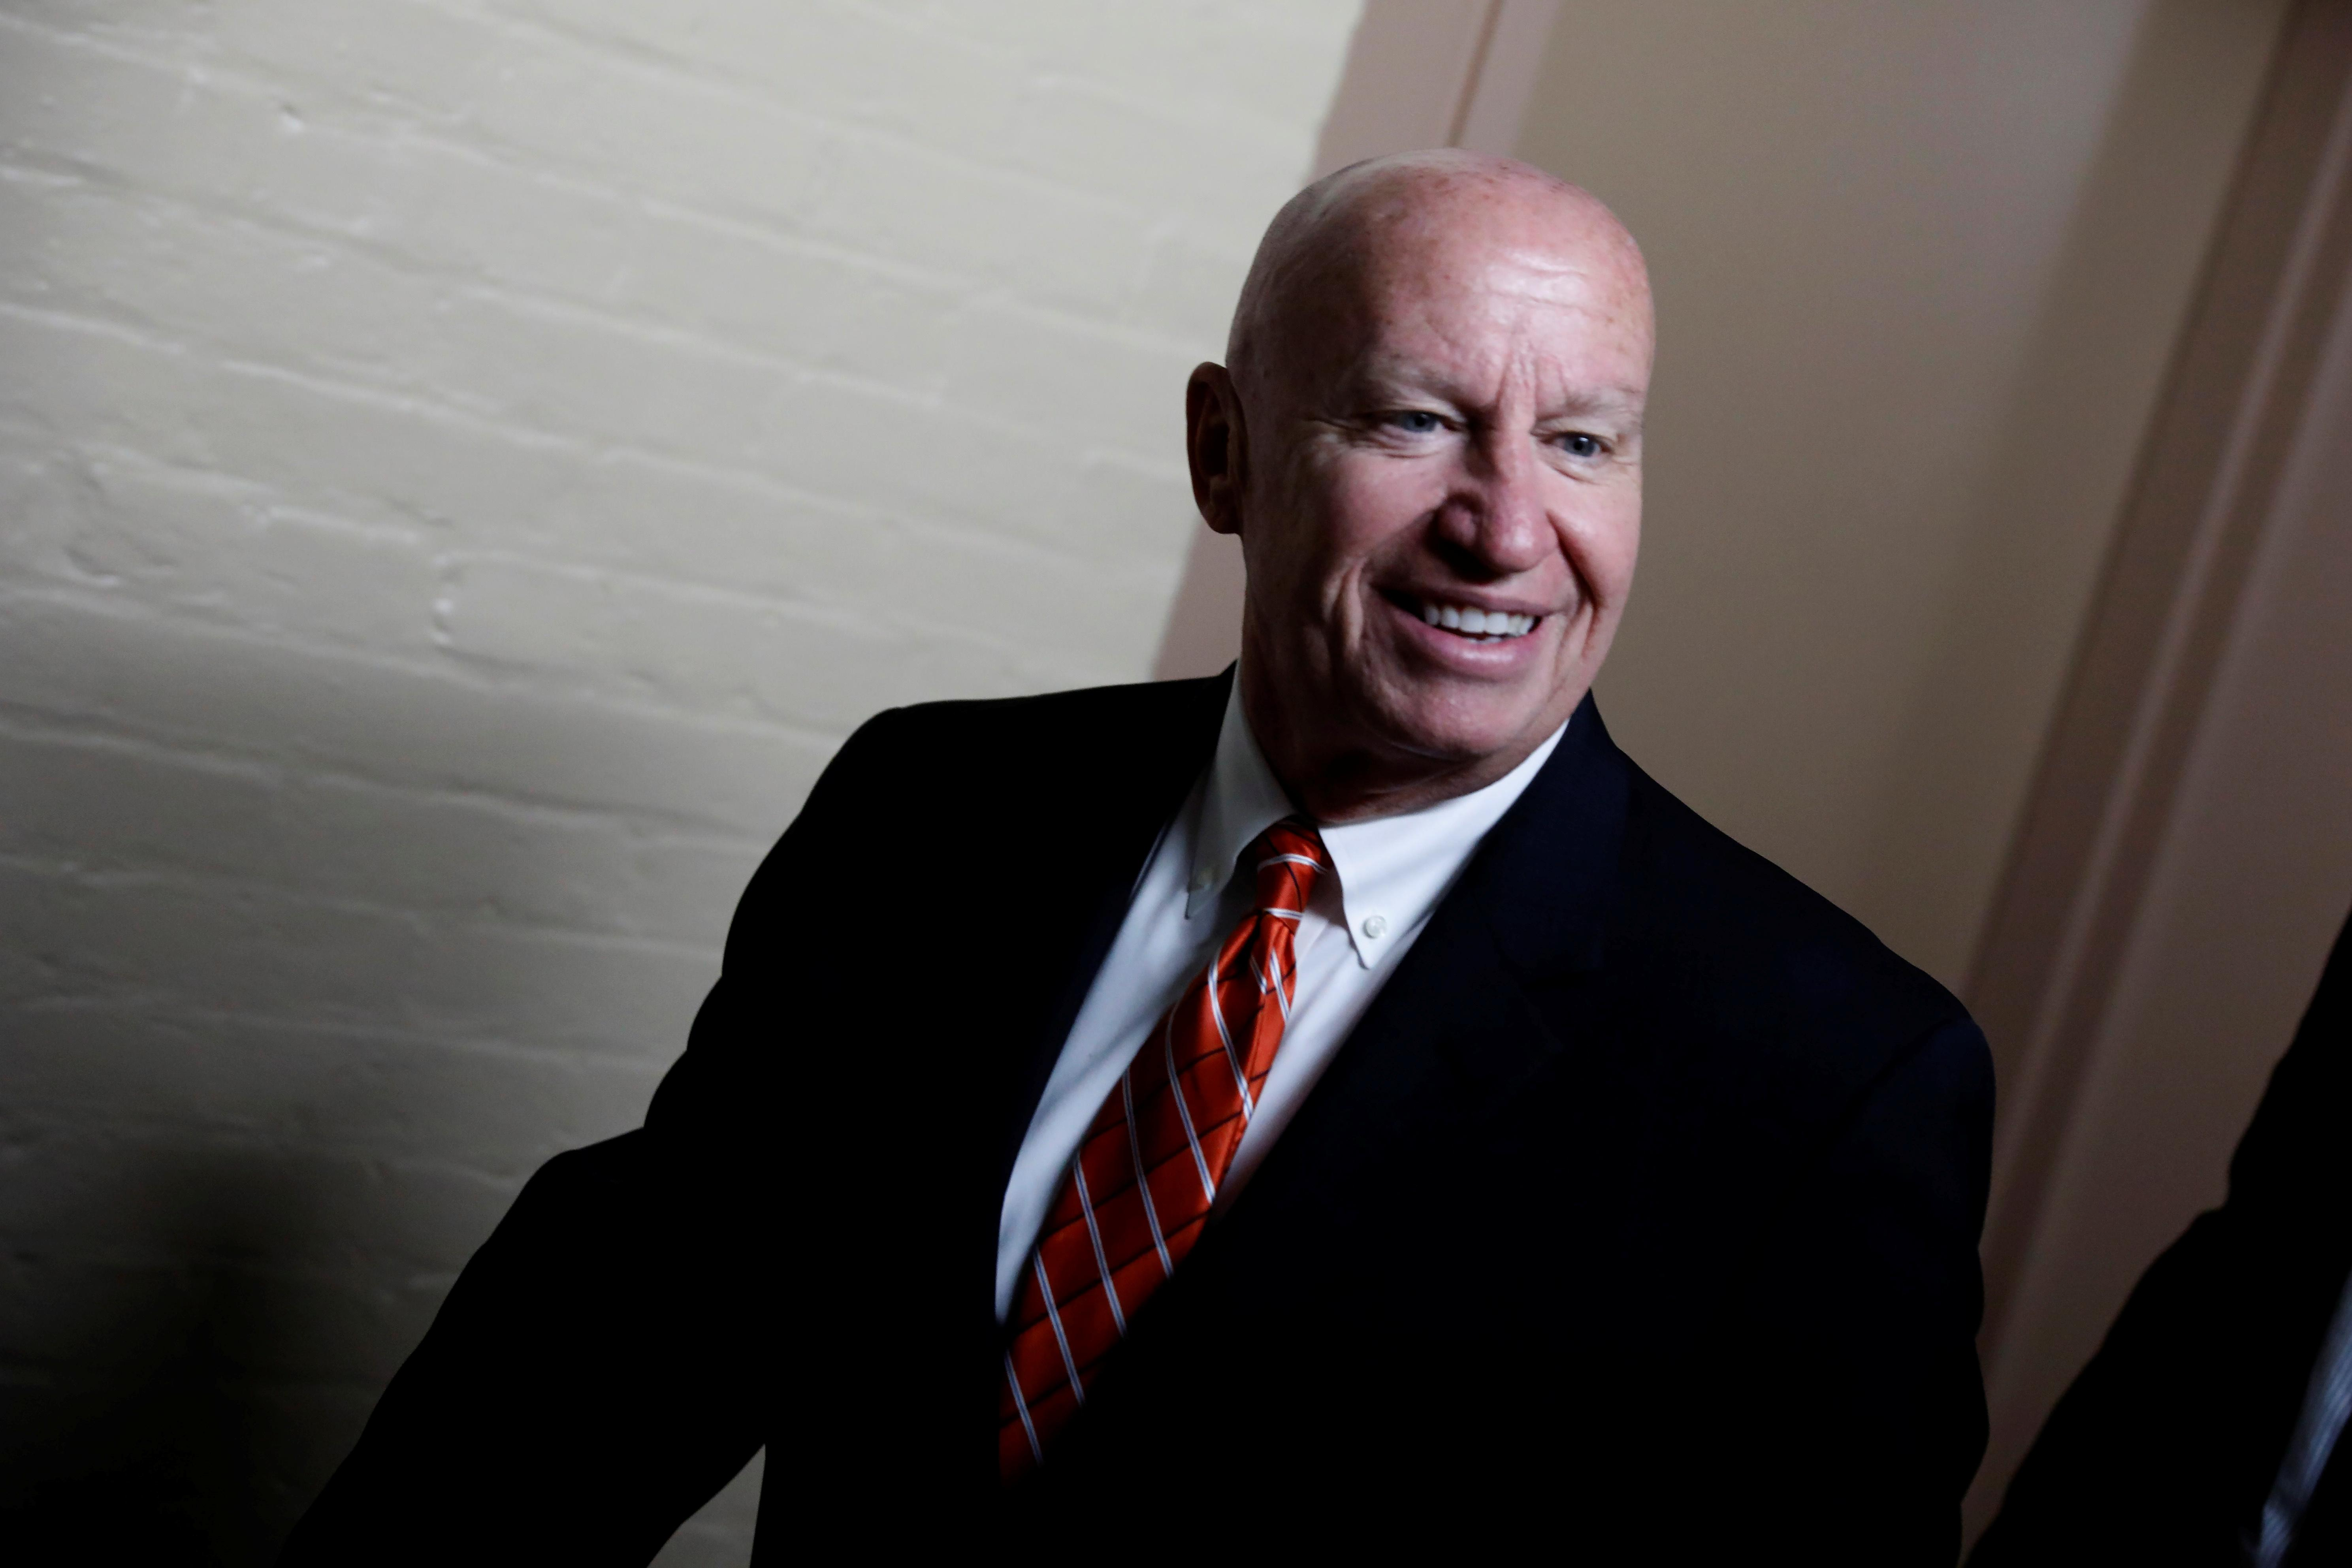 Rep. Kevin Brady (R-TX), Chairman of the House Ways and Means Committee, arrives for a Republican conference meeting at the U.S. Capitol in Washington, U.S., December 20, 2017. Aaron P. Bernstein